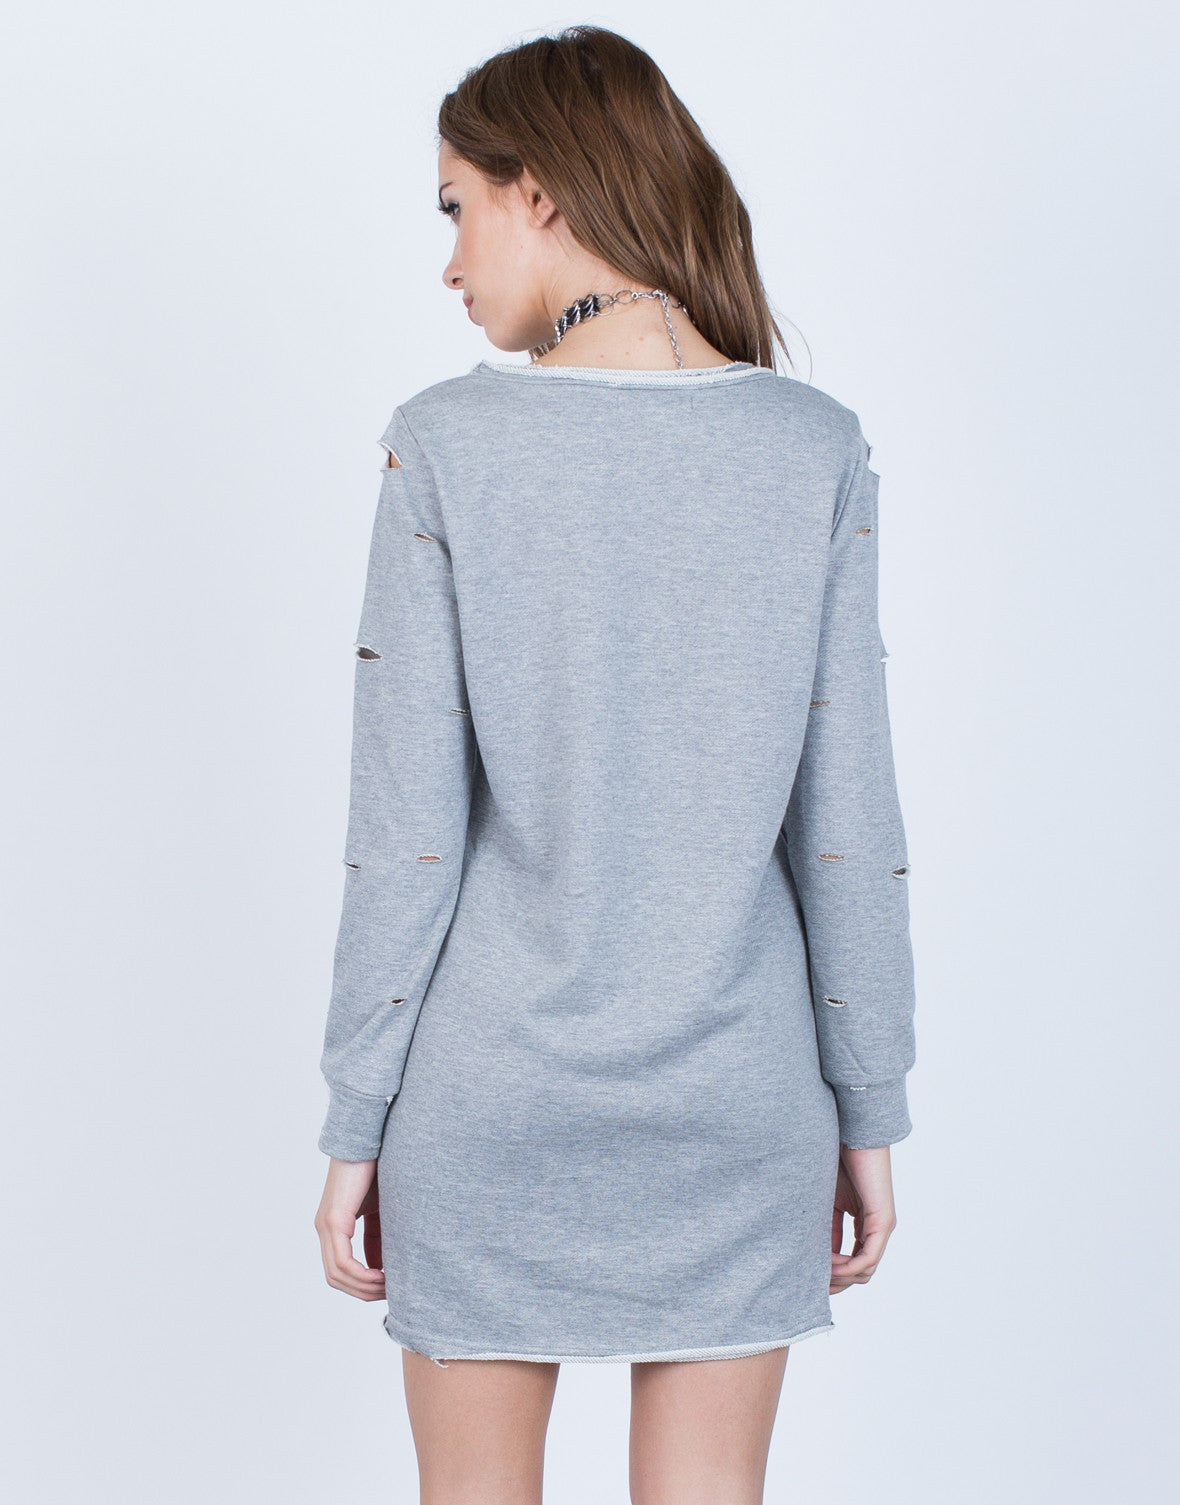 Back View of Holey Sweater Dress